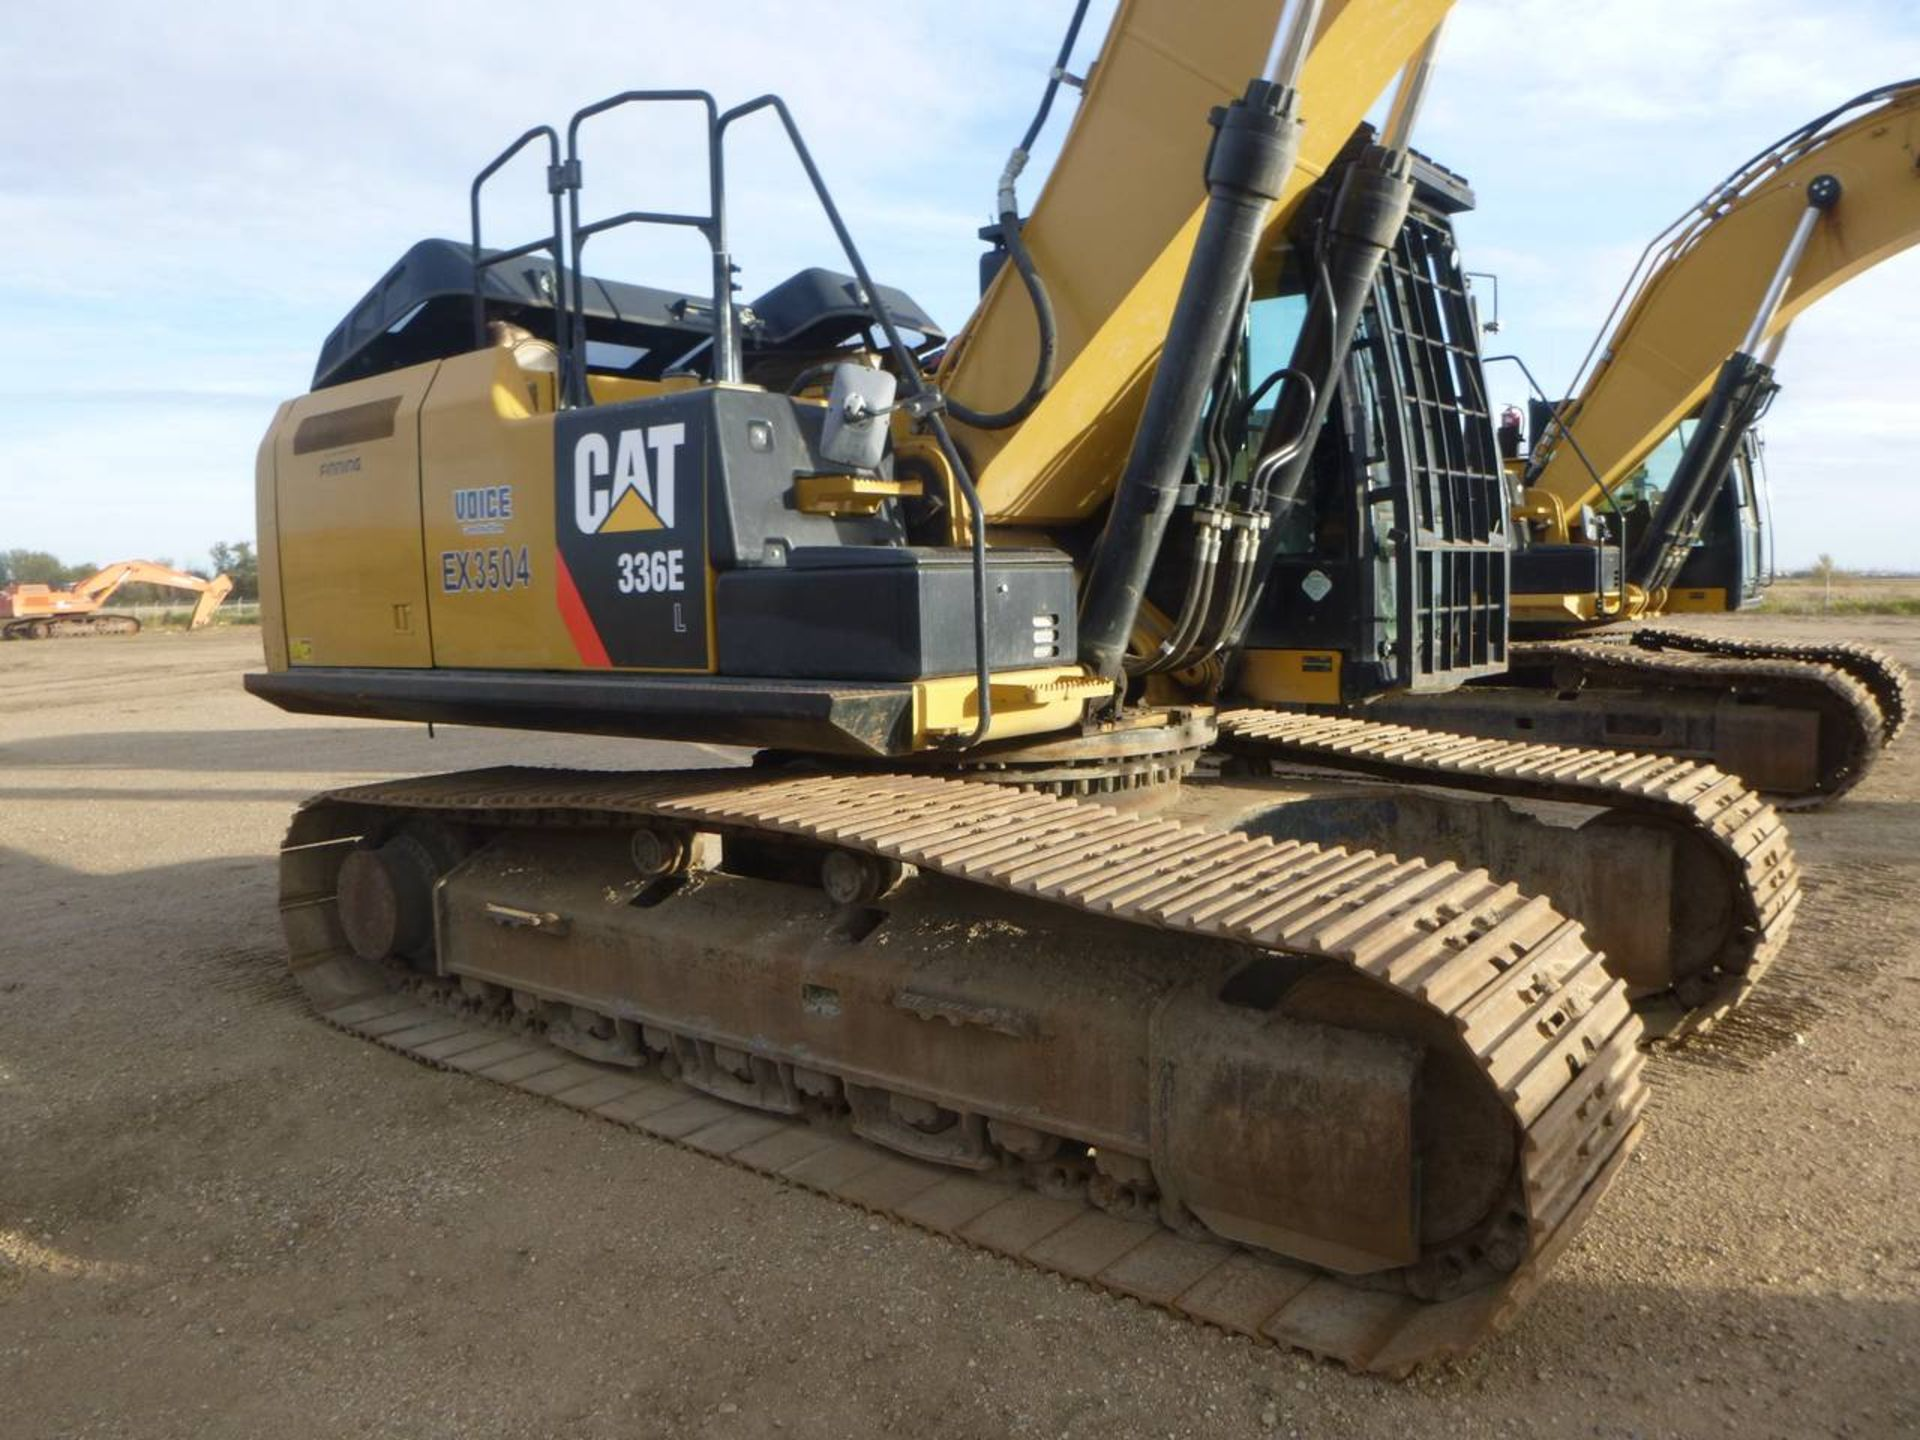 2012 Caterpillar 336E L Excavator - Image 3 of 11